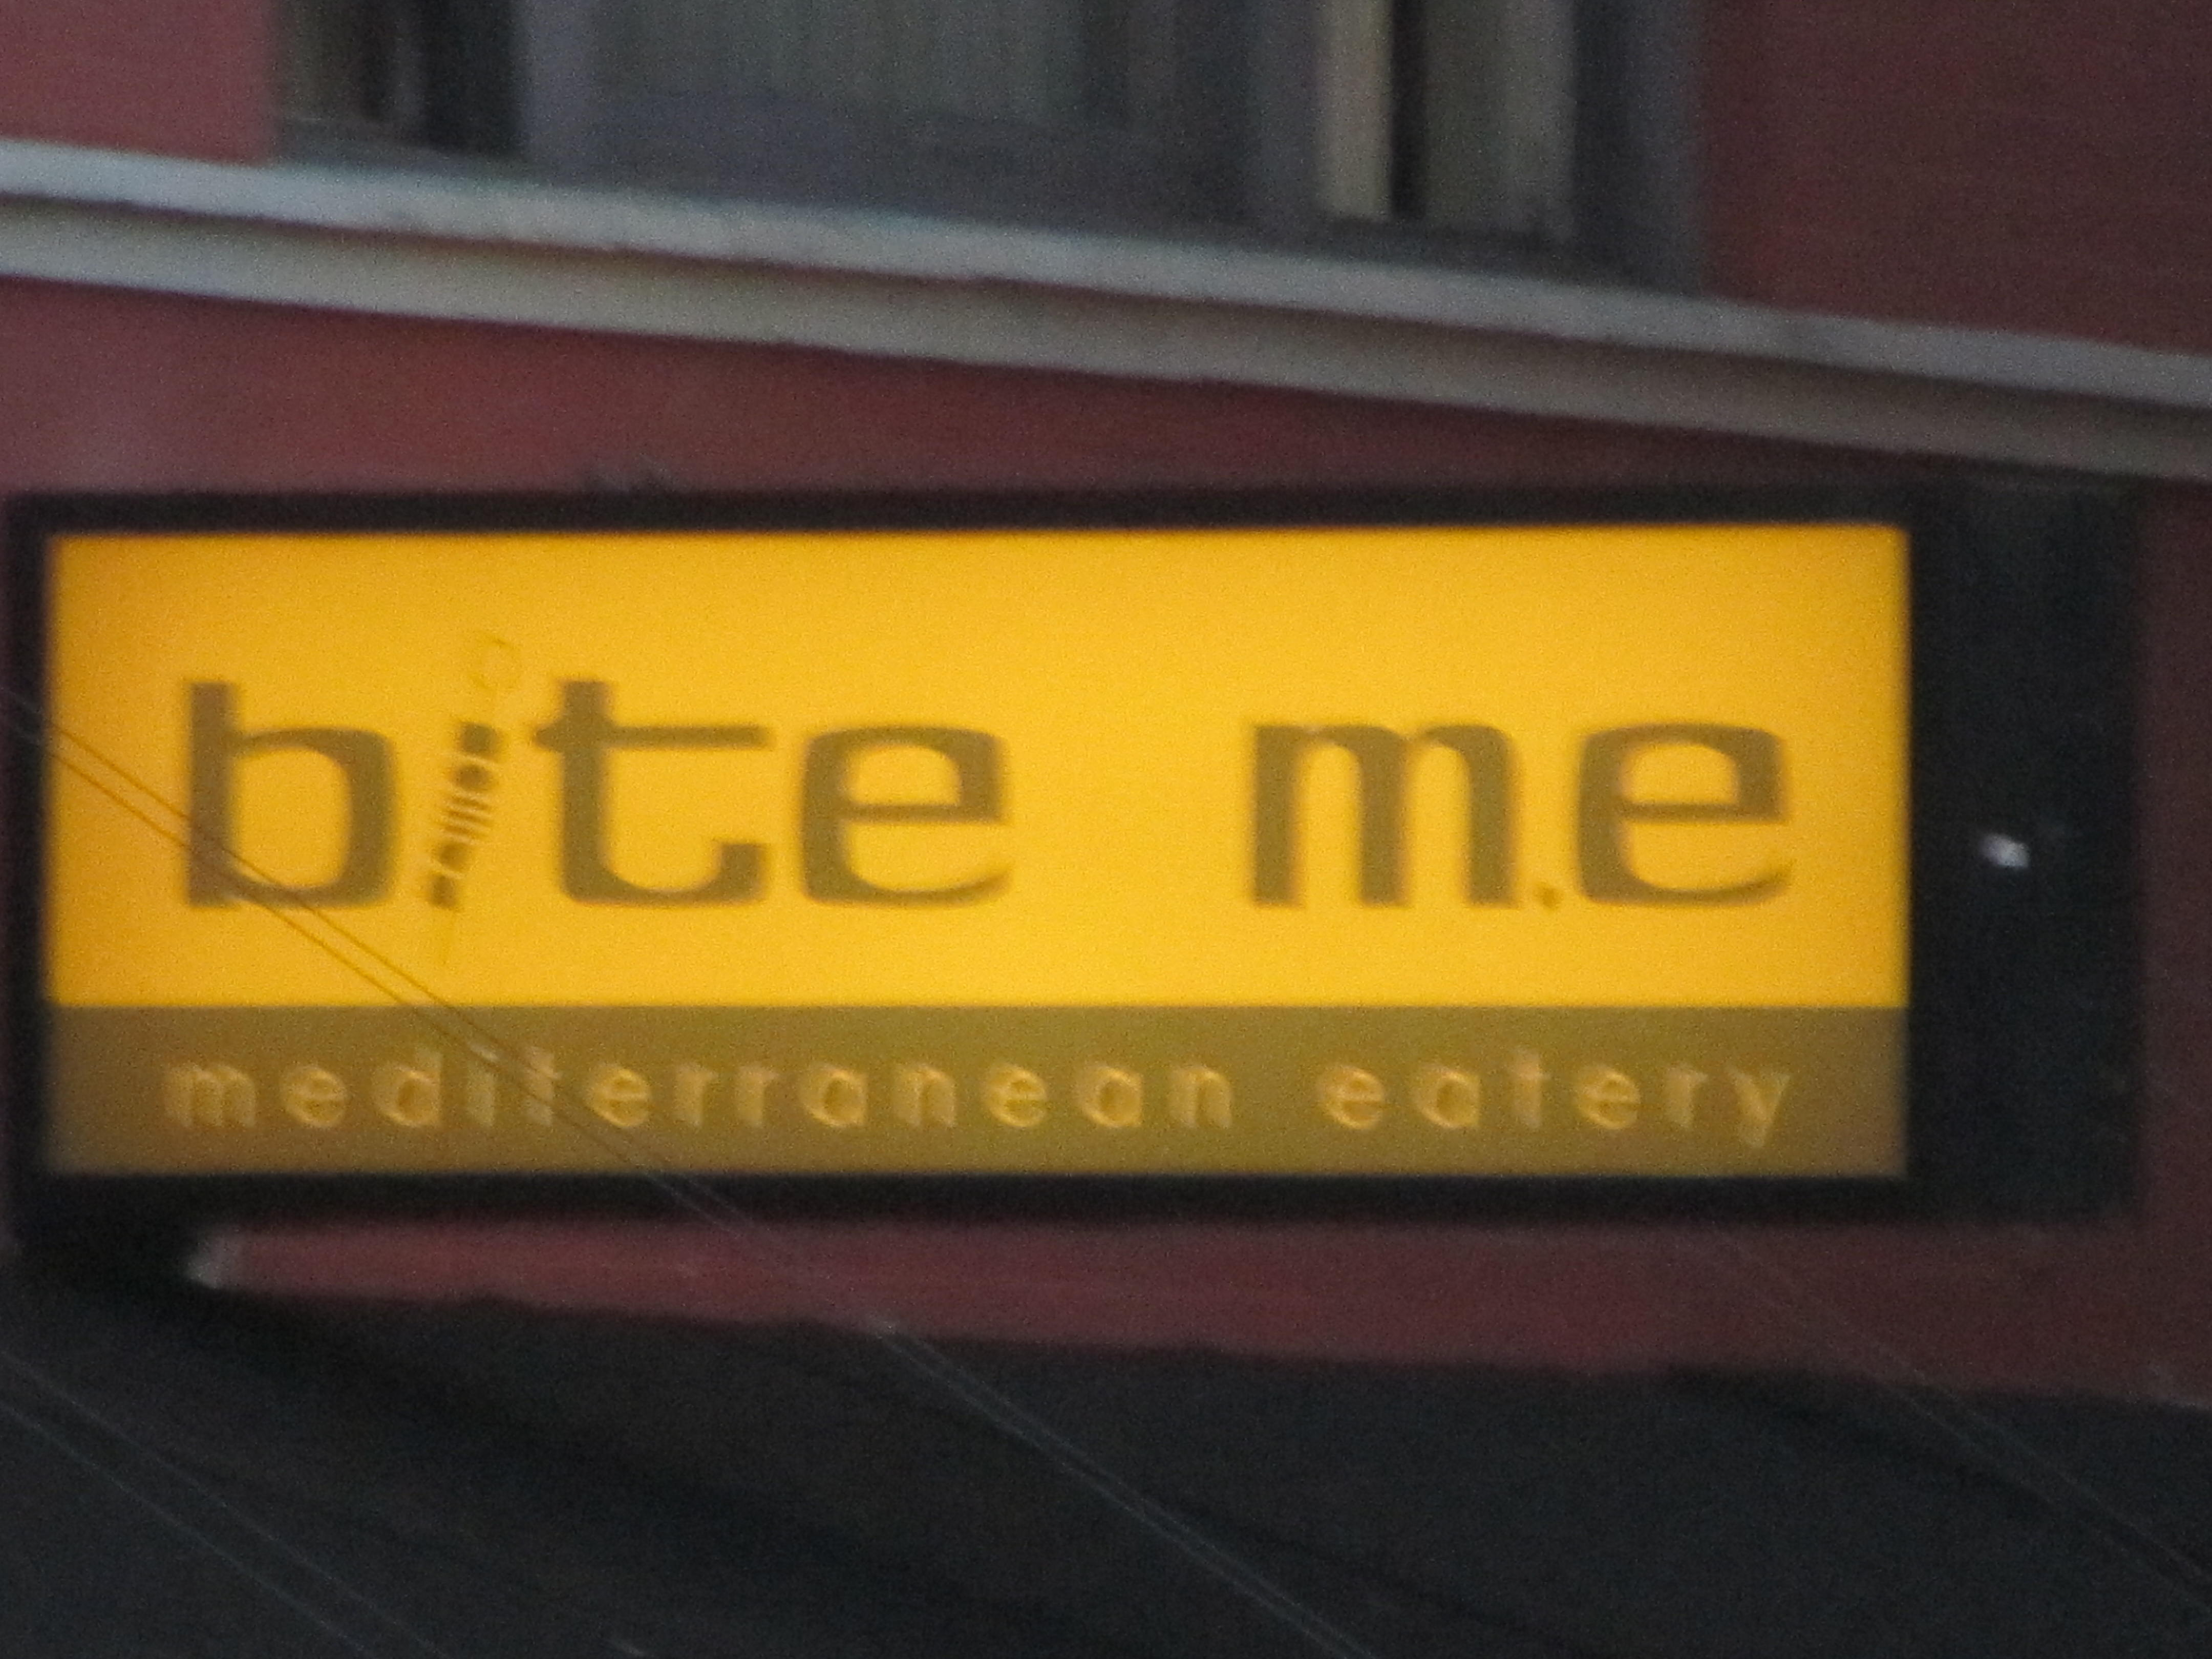 How to name the restaurant